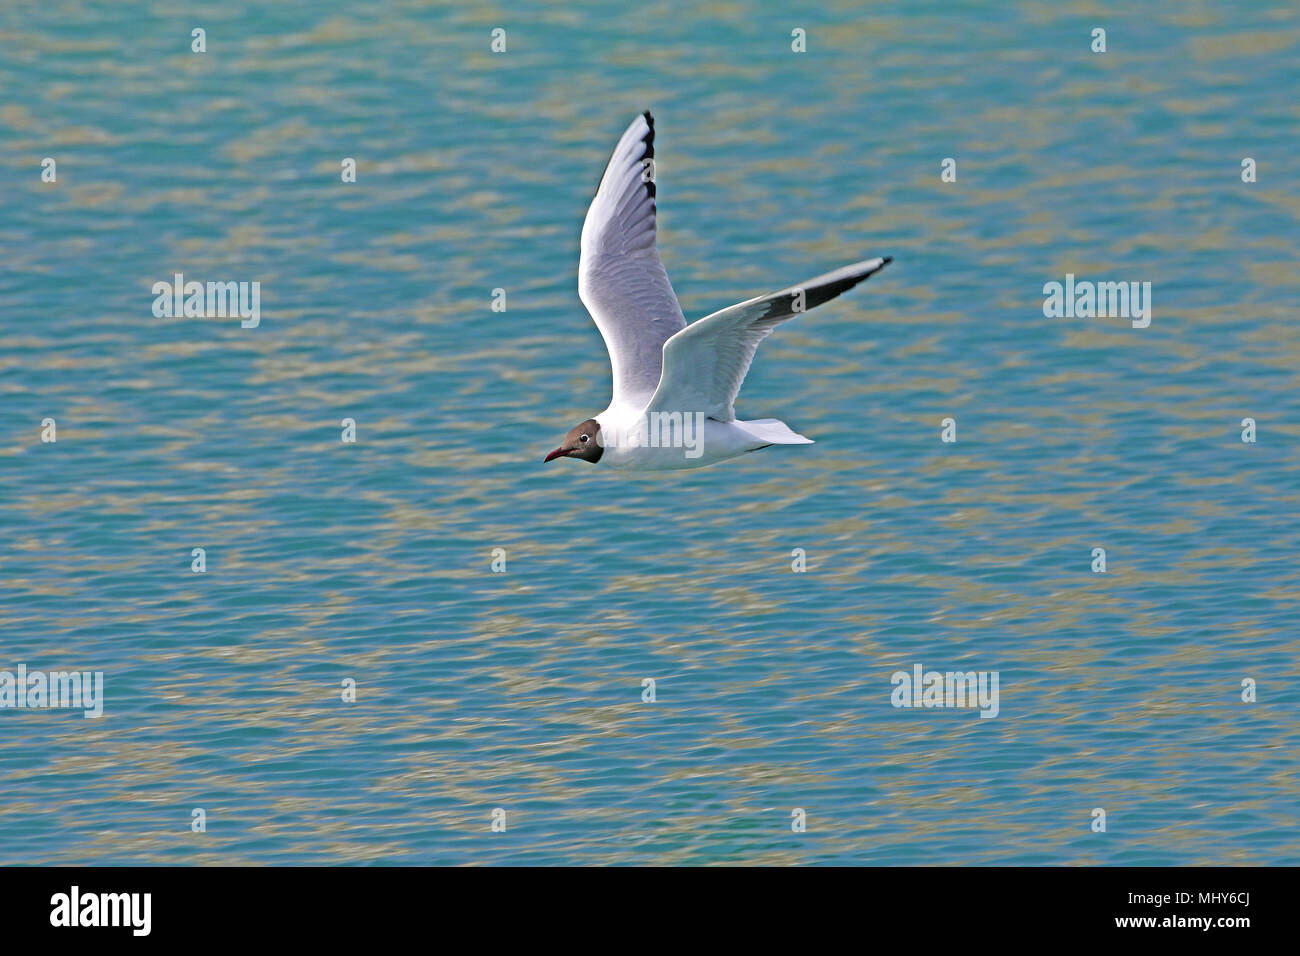 Mediterranean gull or black-headed gull Latin name larus melanocephalus or ridibundus family laridae close up in flight over the Adriatic Sea Italy - Stock Image